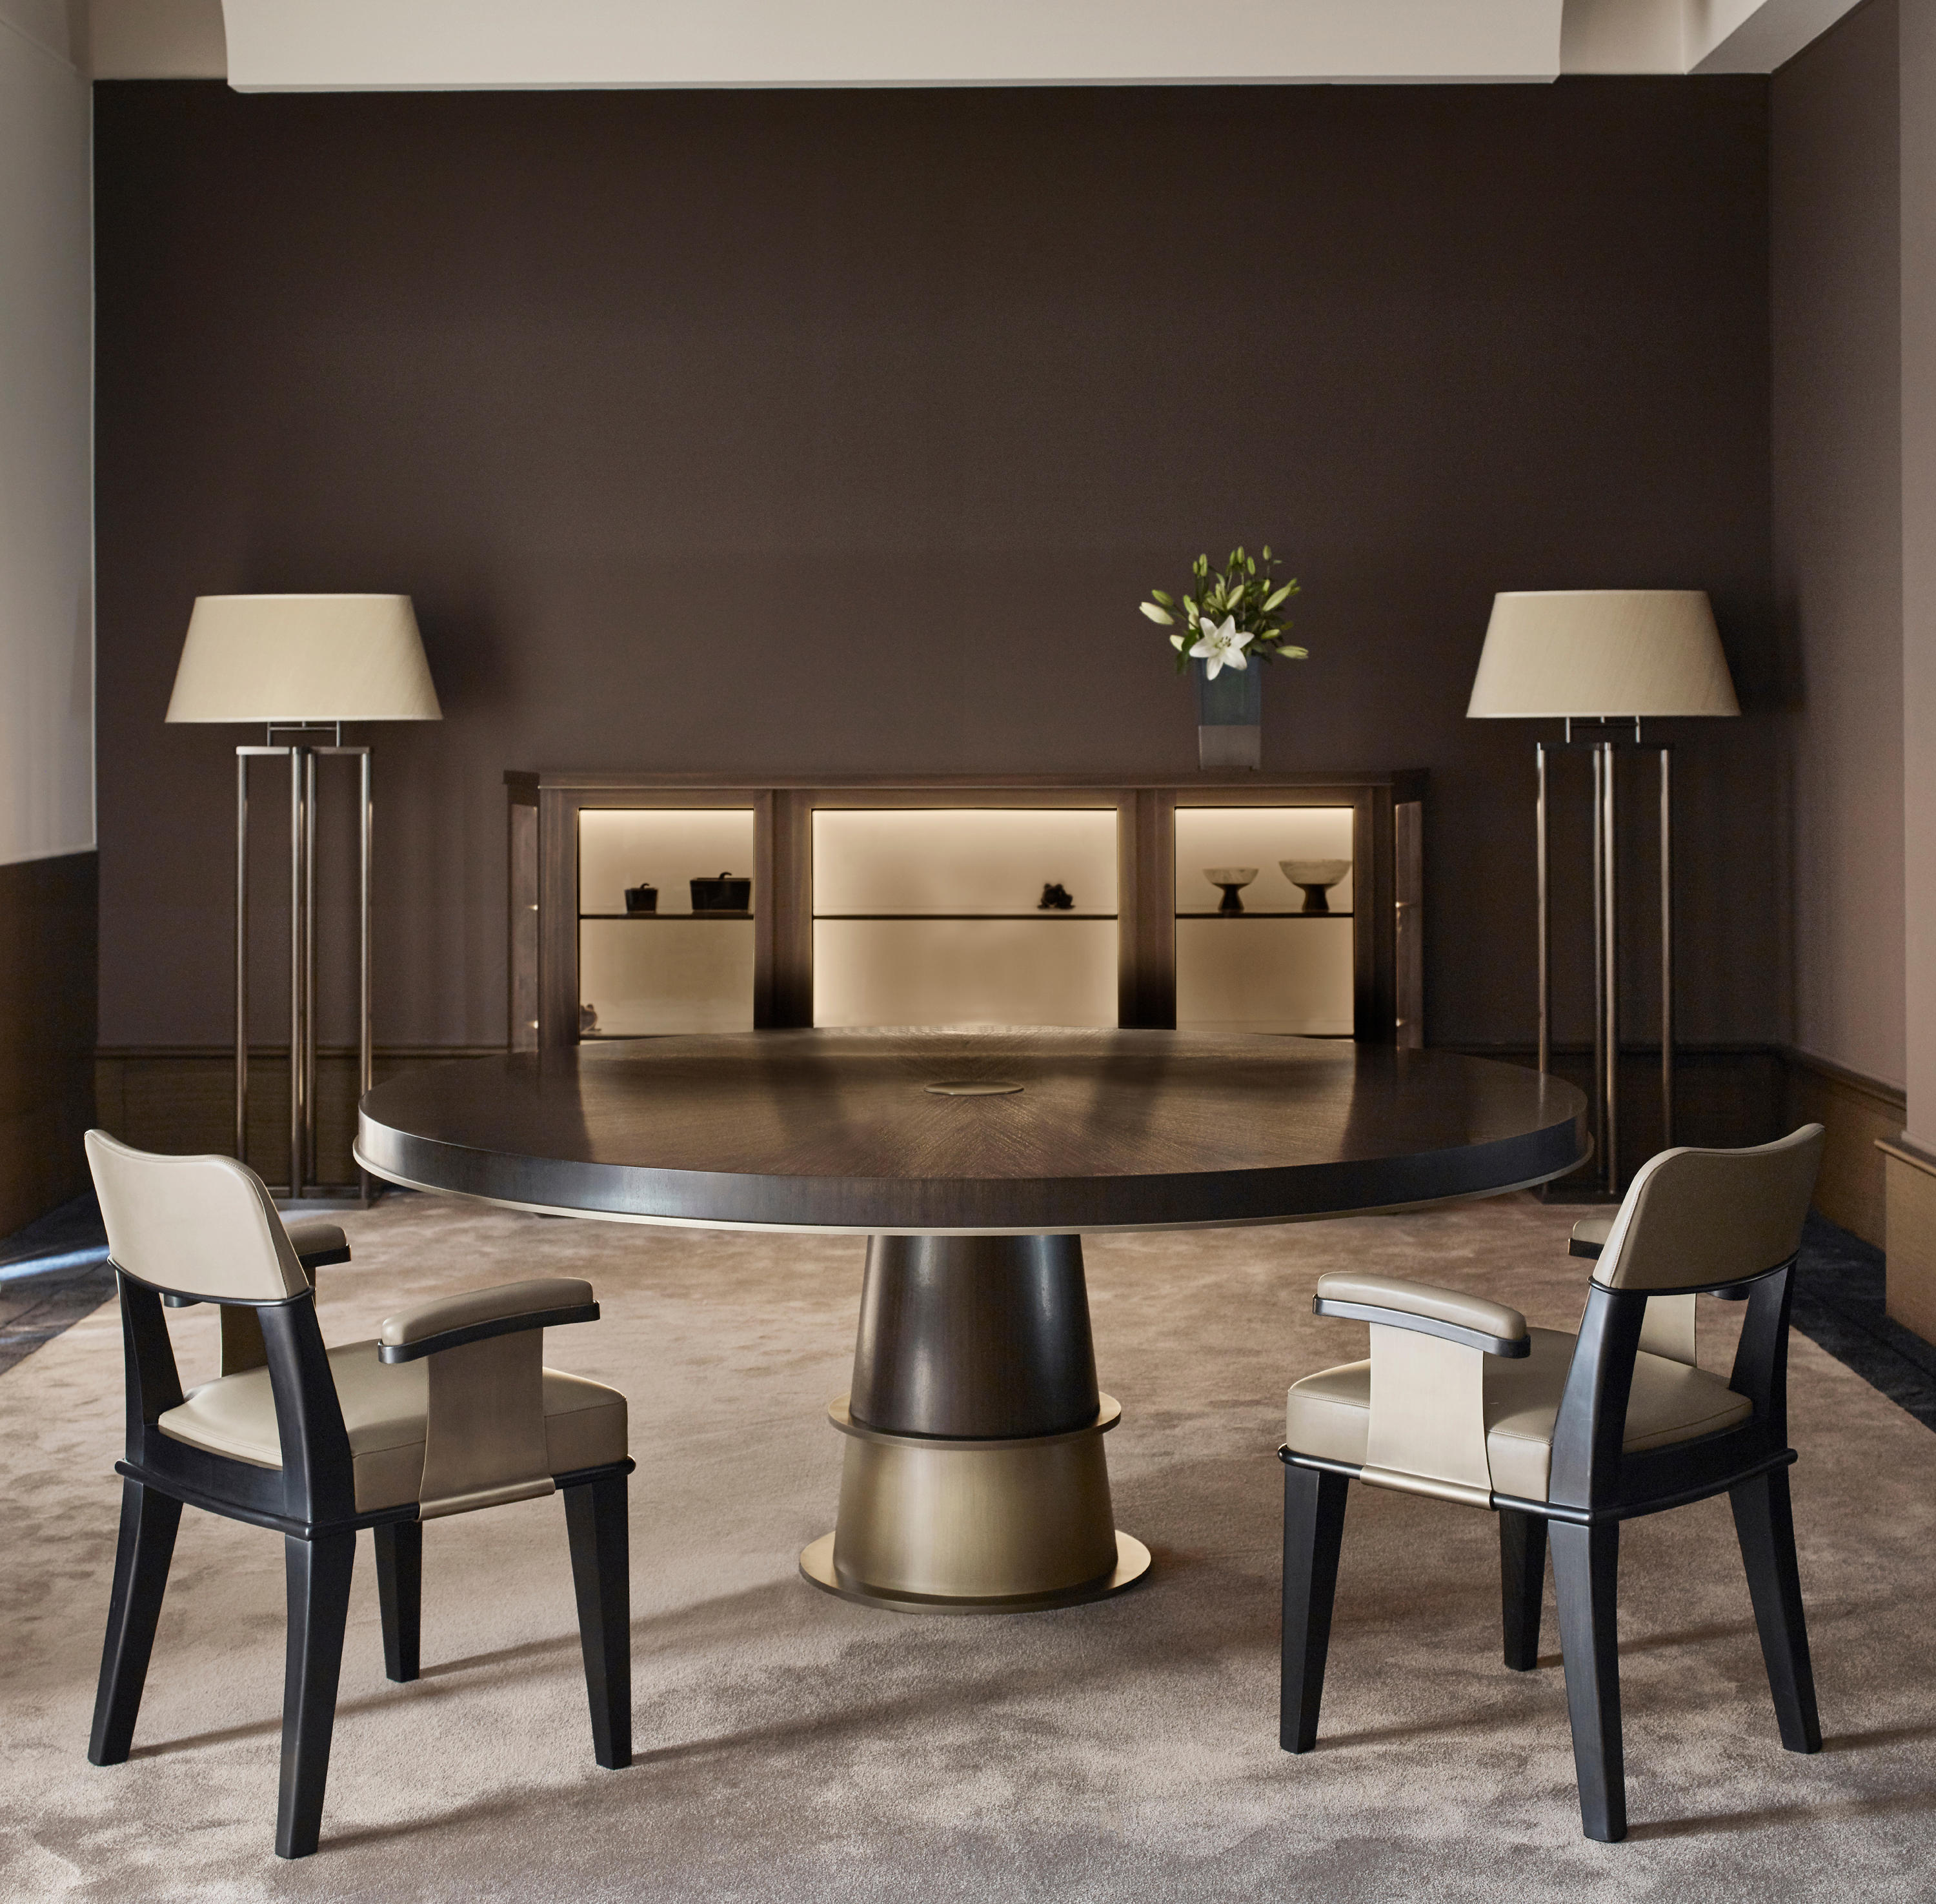 Tornasoleambient02B 3000×2950  Dining  Pinterest Delectable Dining Room Furniture Dubai Design Decoration